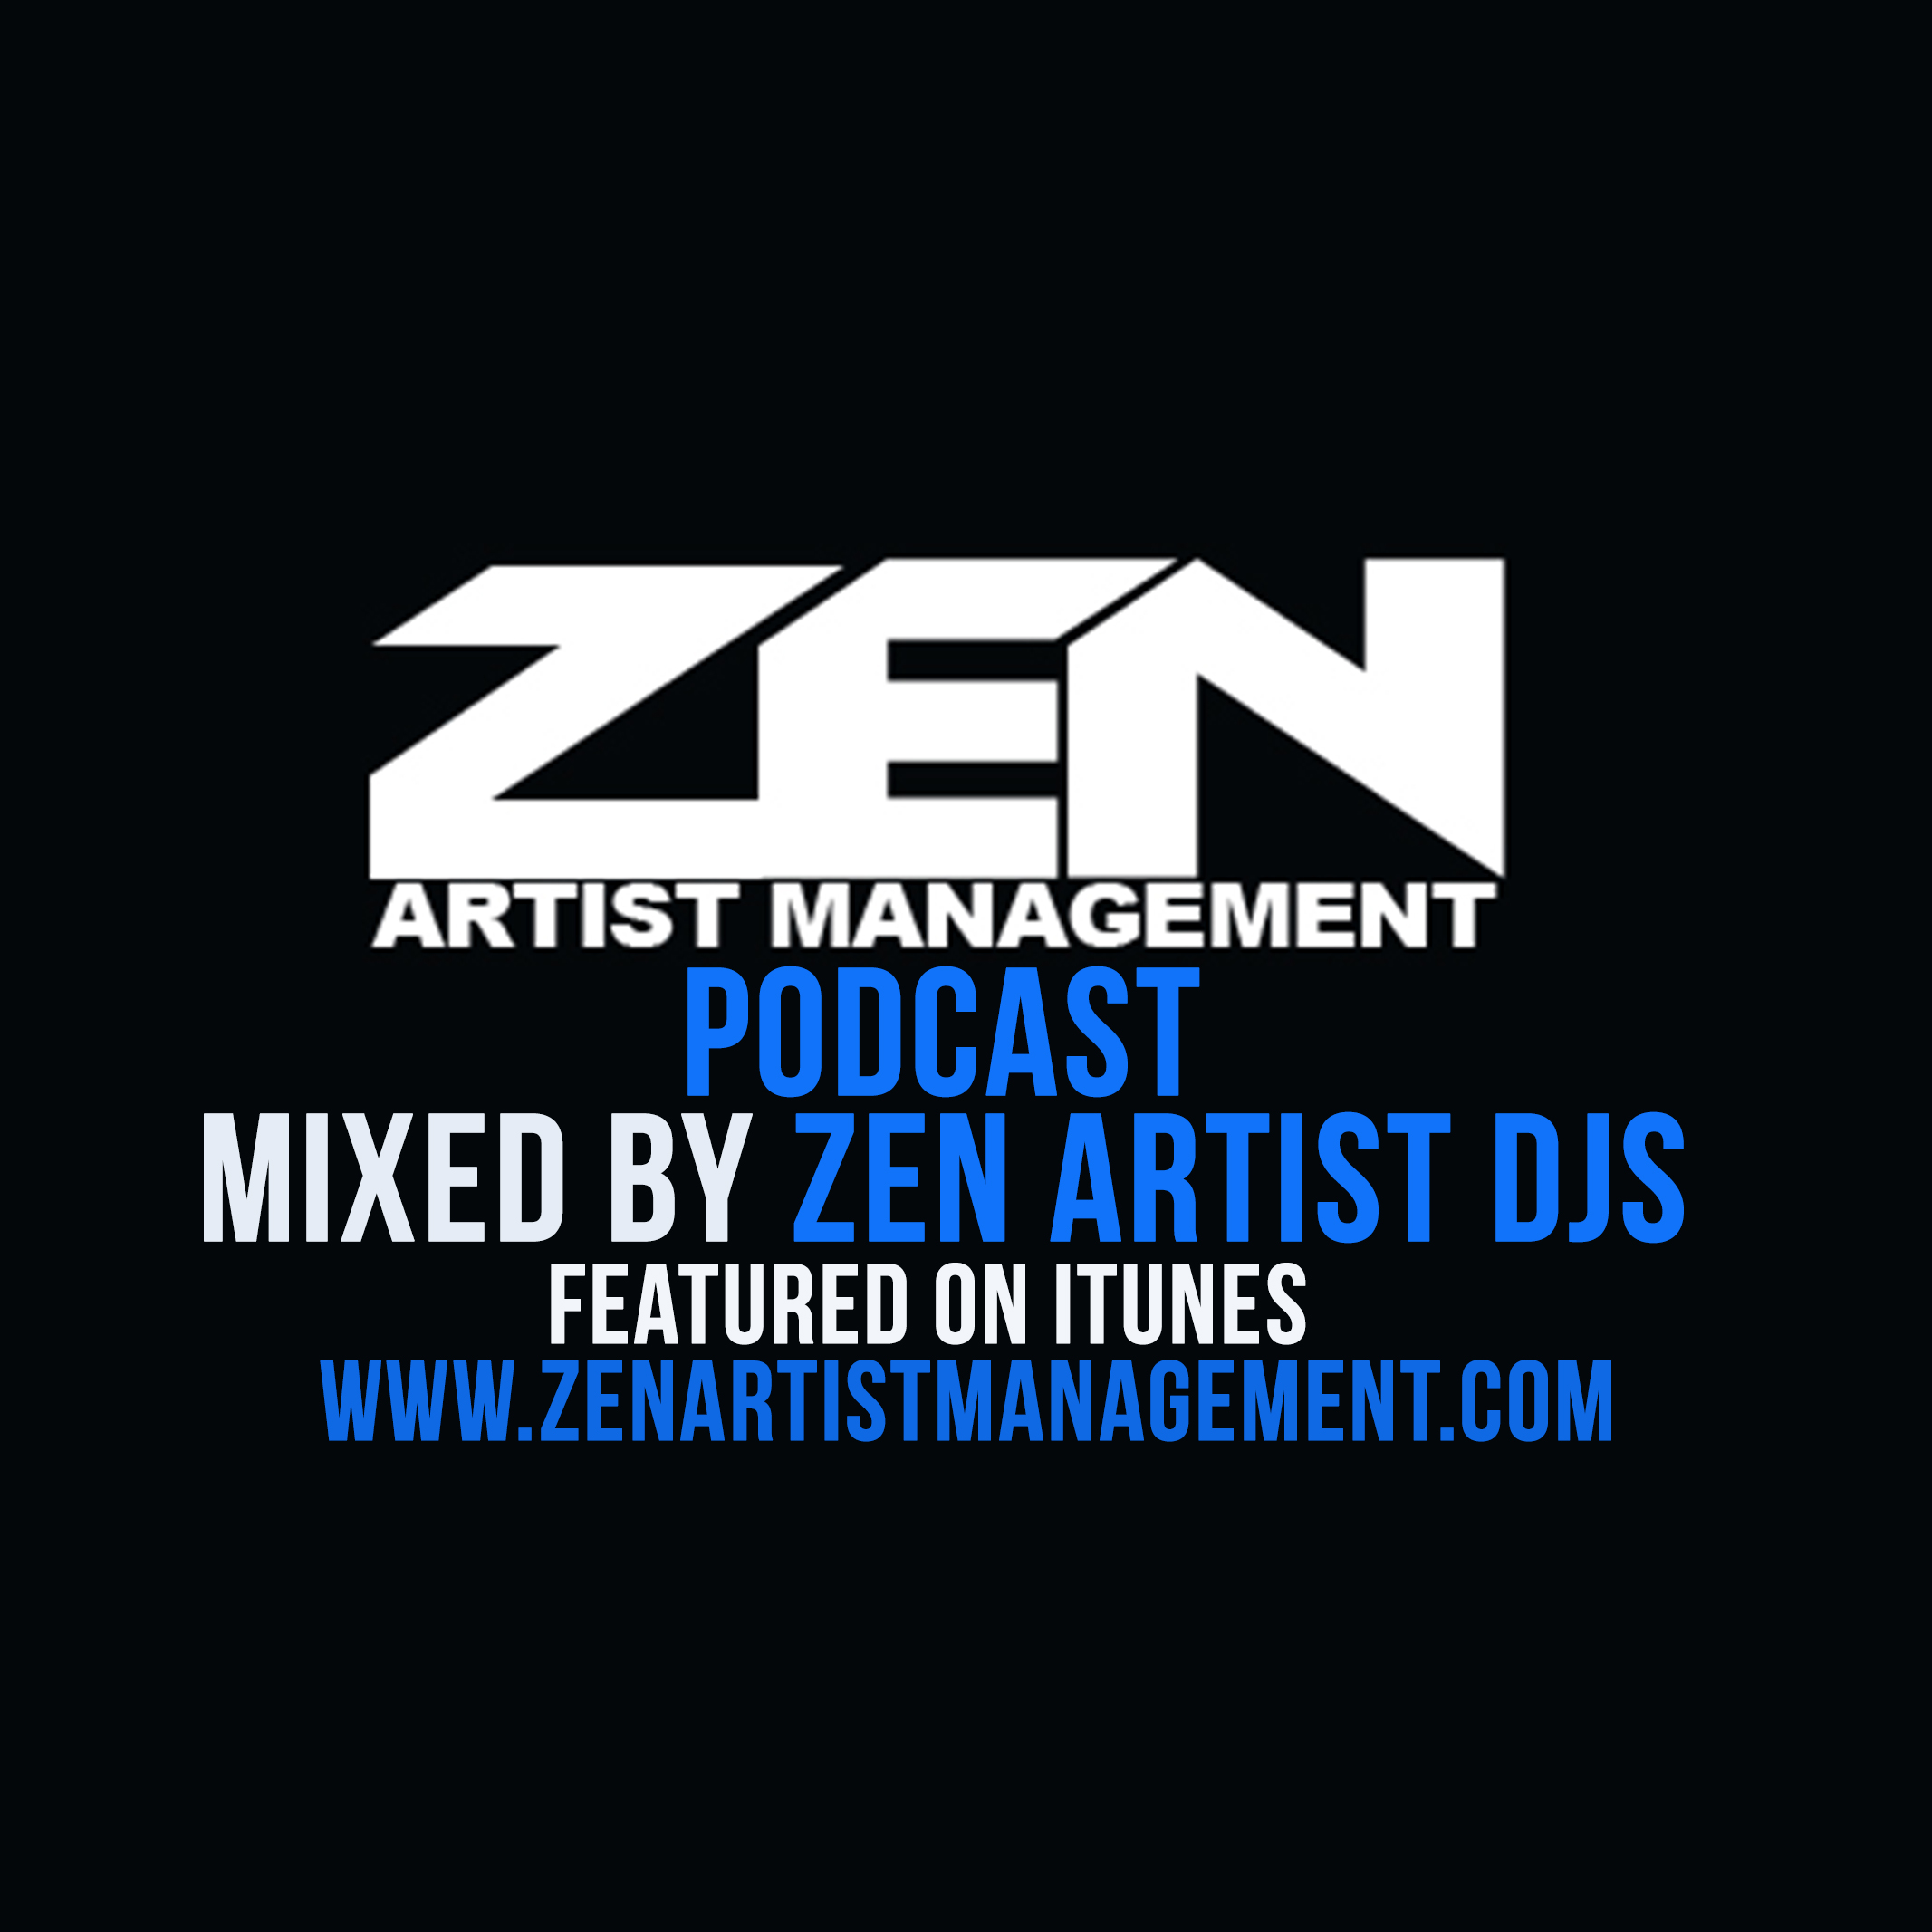 Zen Artists Radio